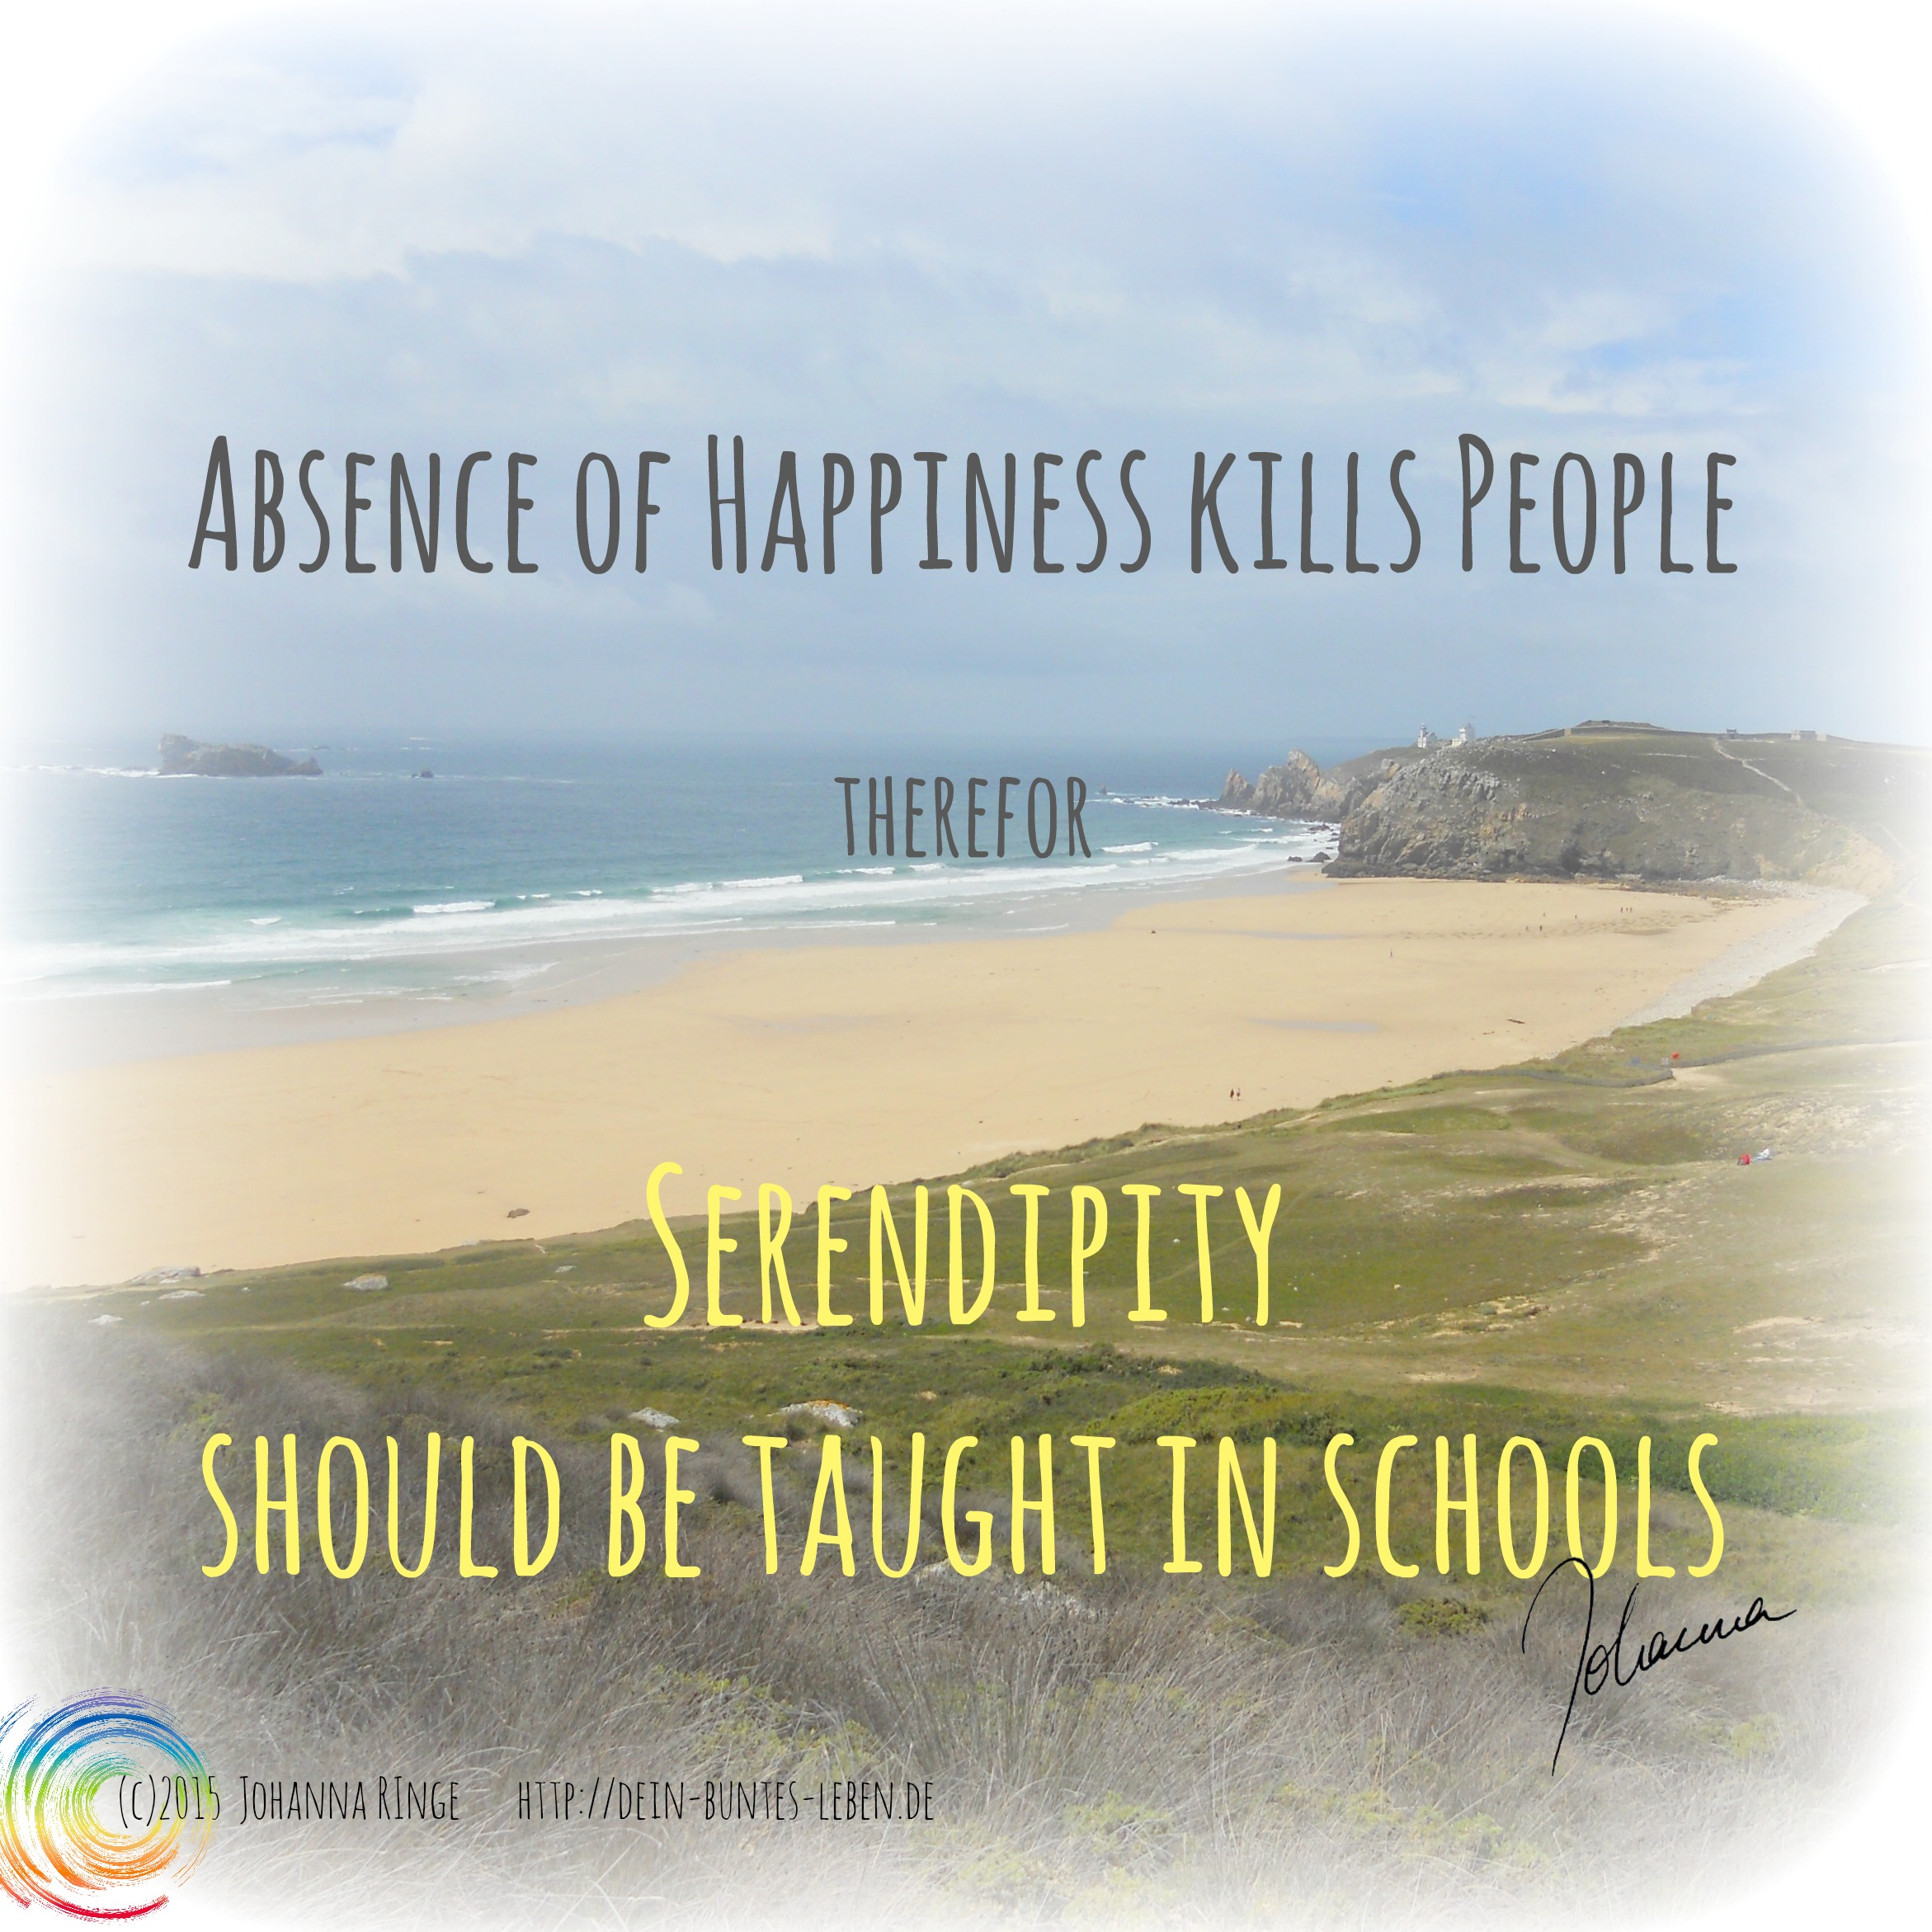 Serendipity - Absence of happiness kills people, therefor Serendipity should be taught in schools (c) 2015 Johanna Ringe